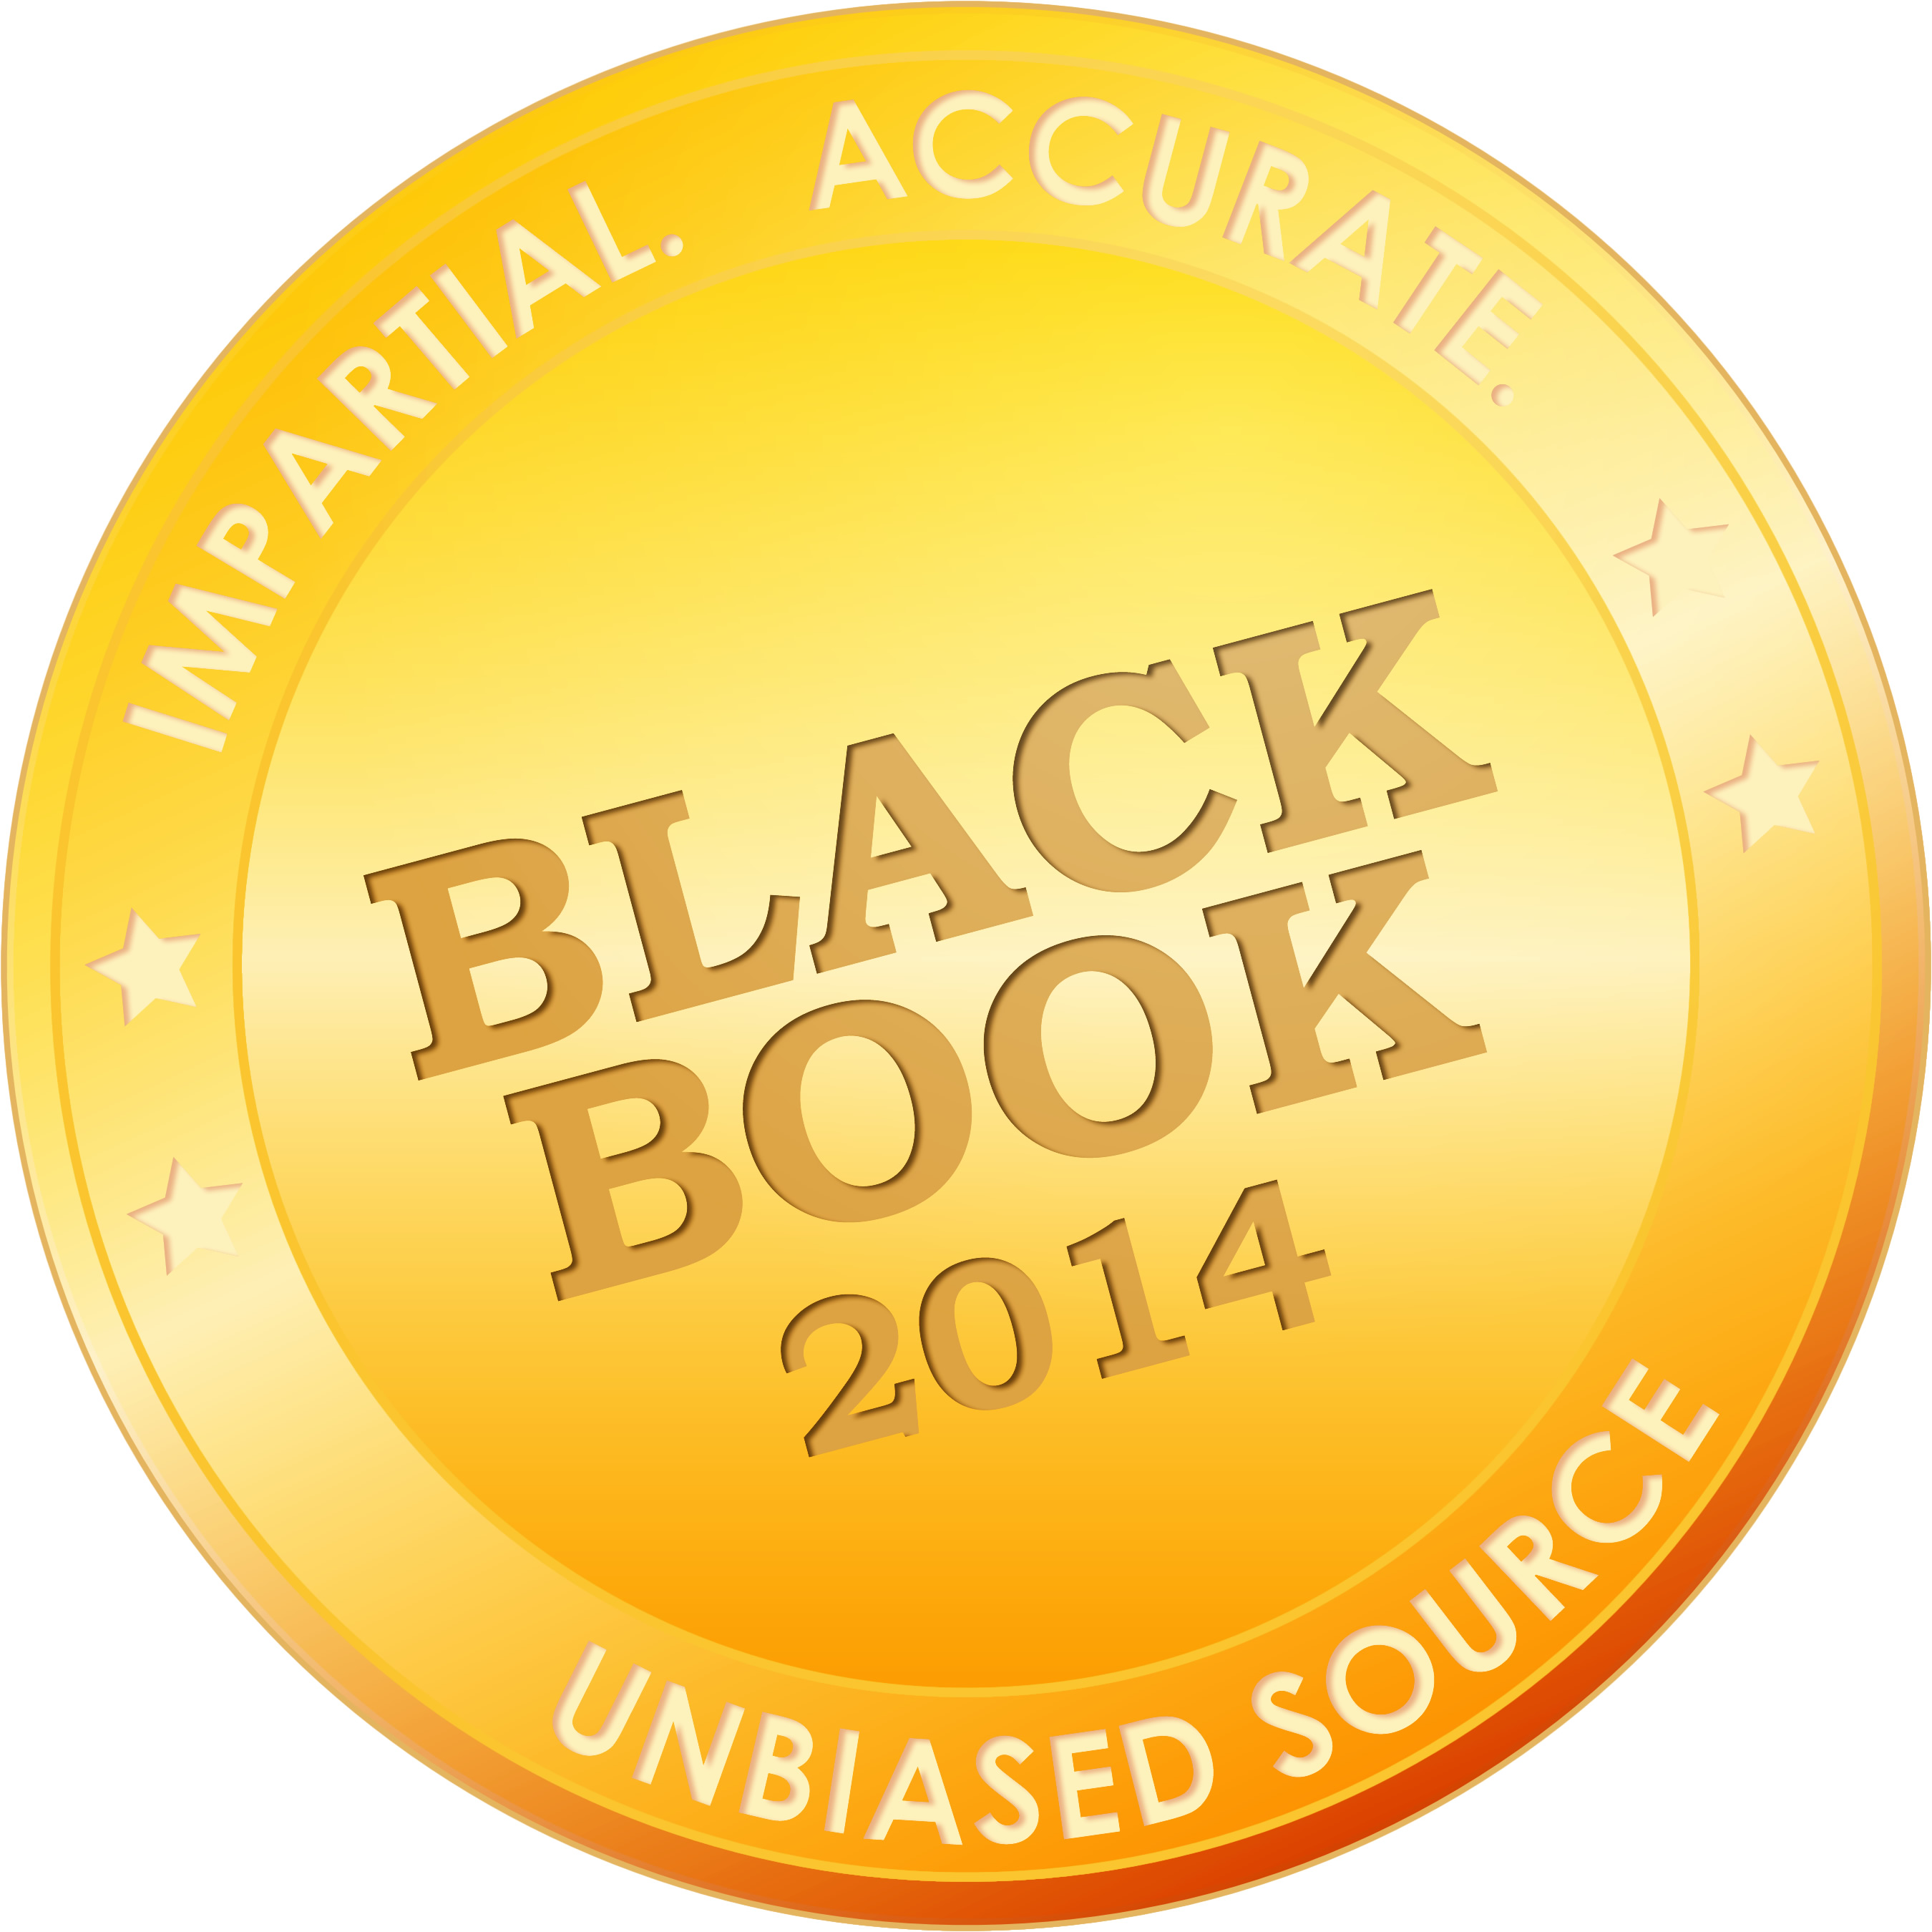 2014 Black Book Rankings Low resolution Seal